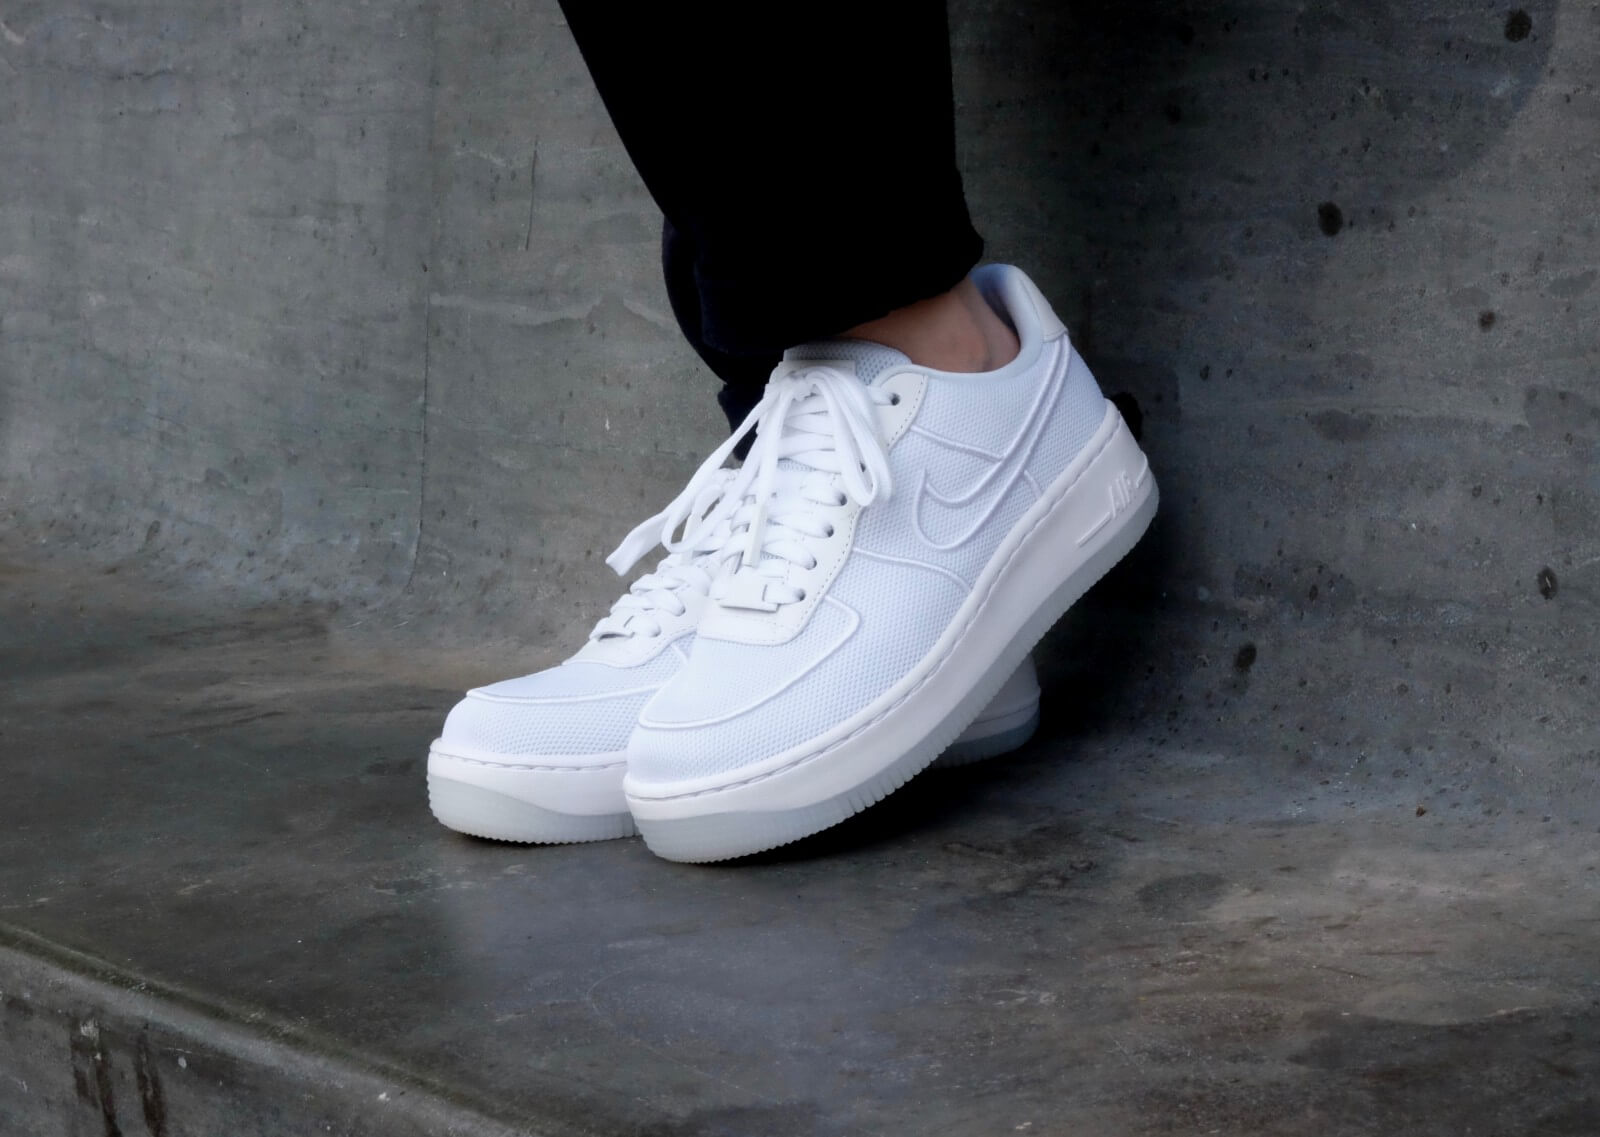 nike wmns air force 1 low upstep br whiteglacier blue